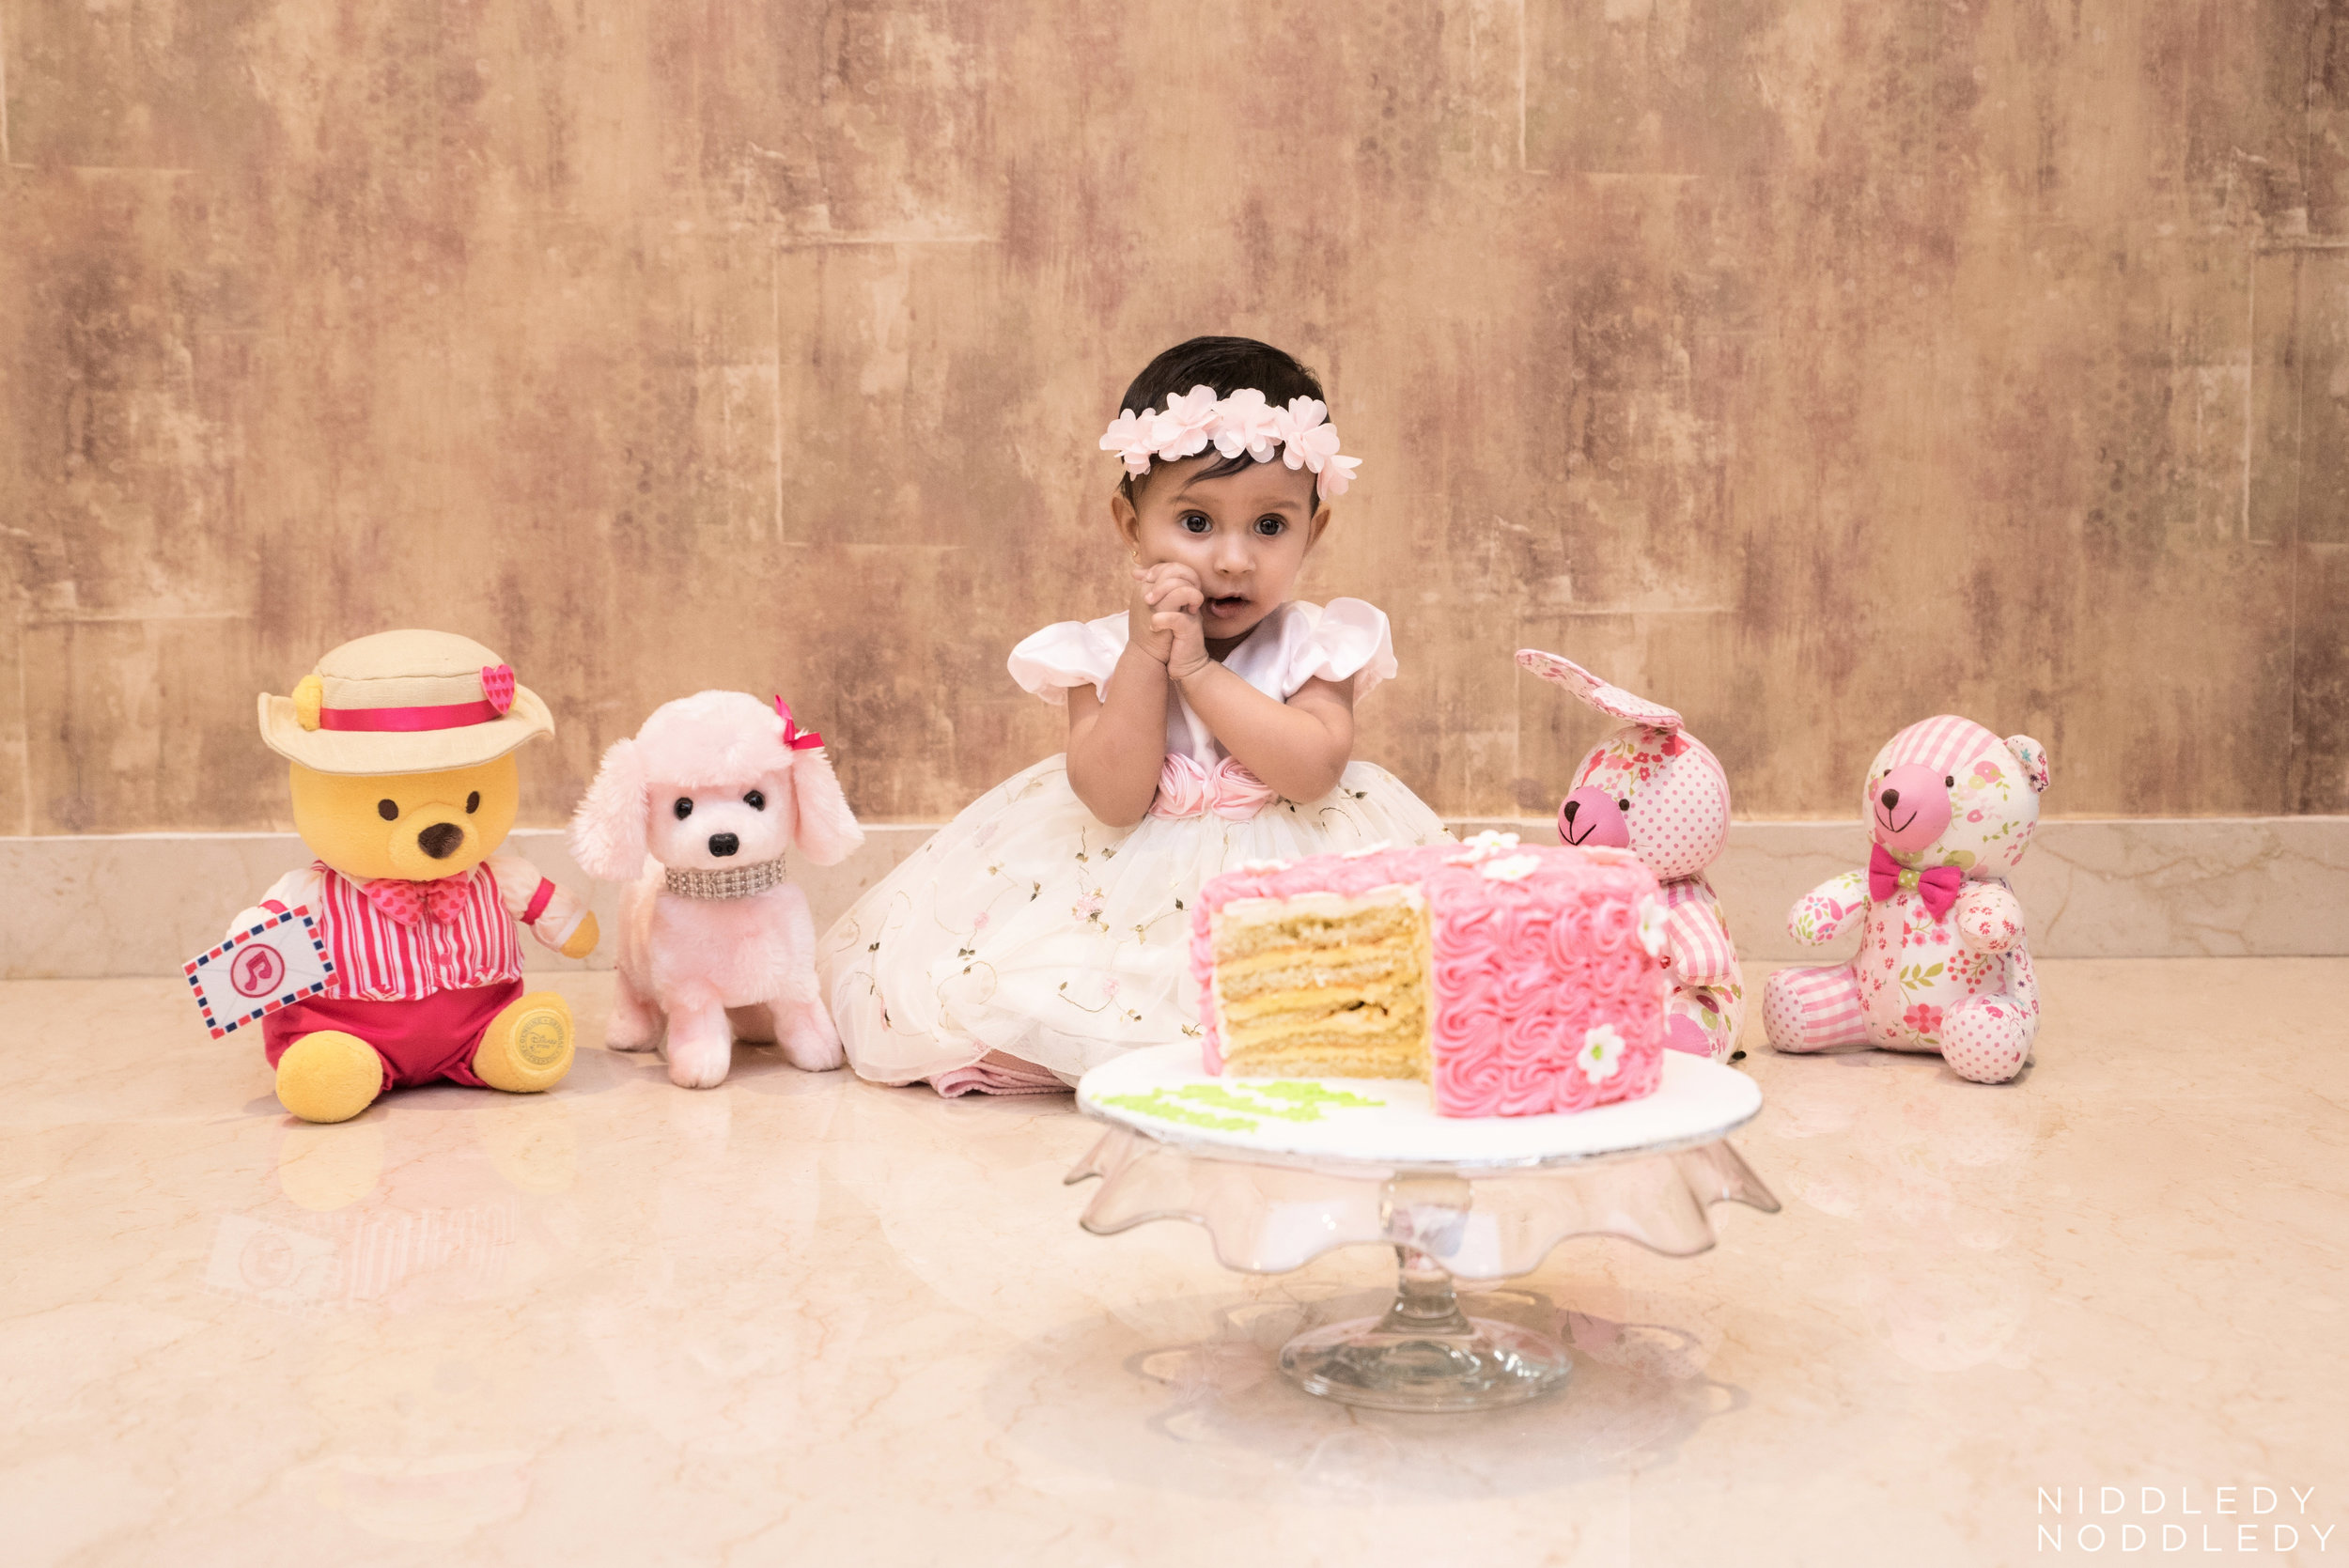 Anaisha Baby Photoshoot ❤ NiddledyNoddledy.com ~ Bumps to Babies Photography, Kolkata - 115.jpg